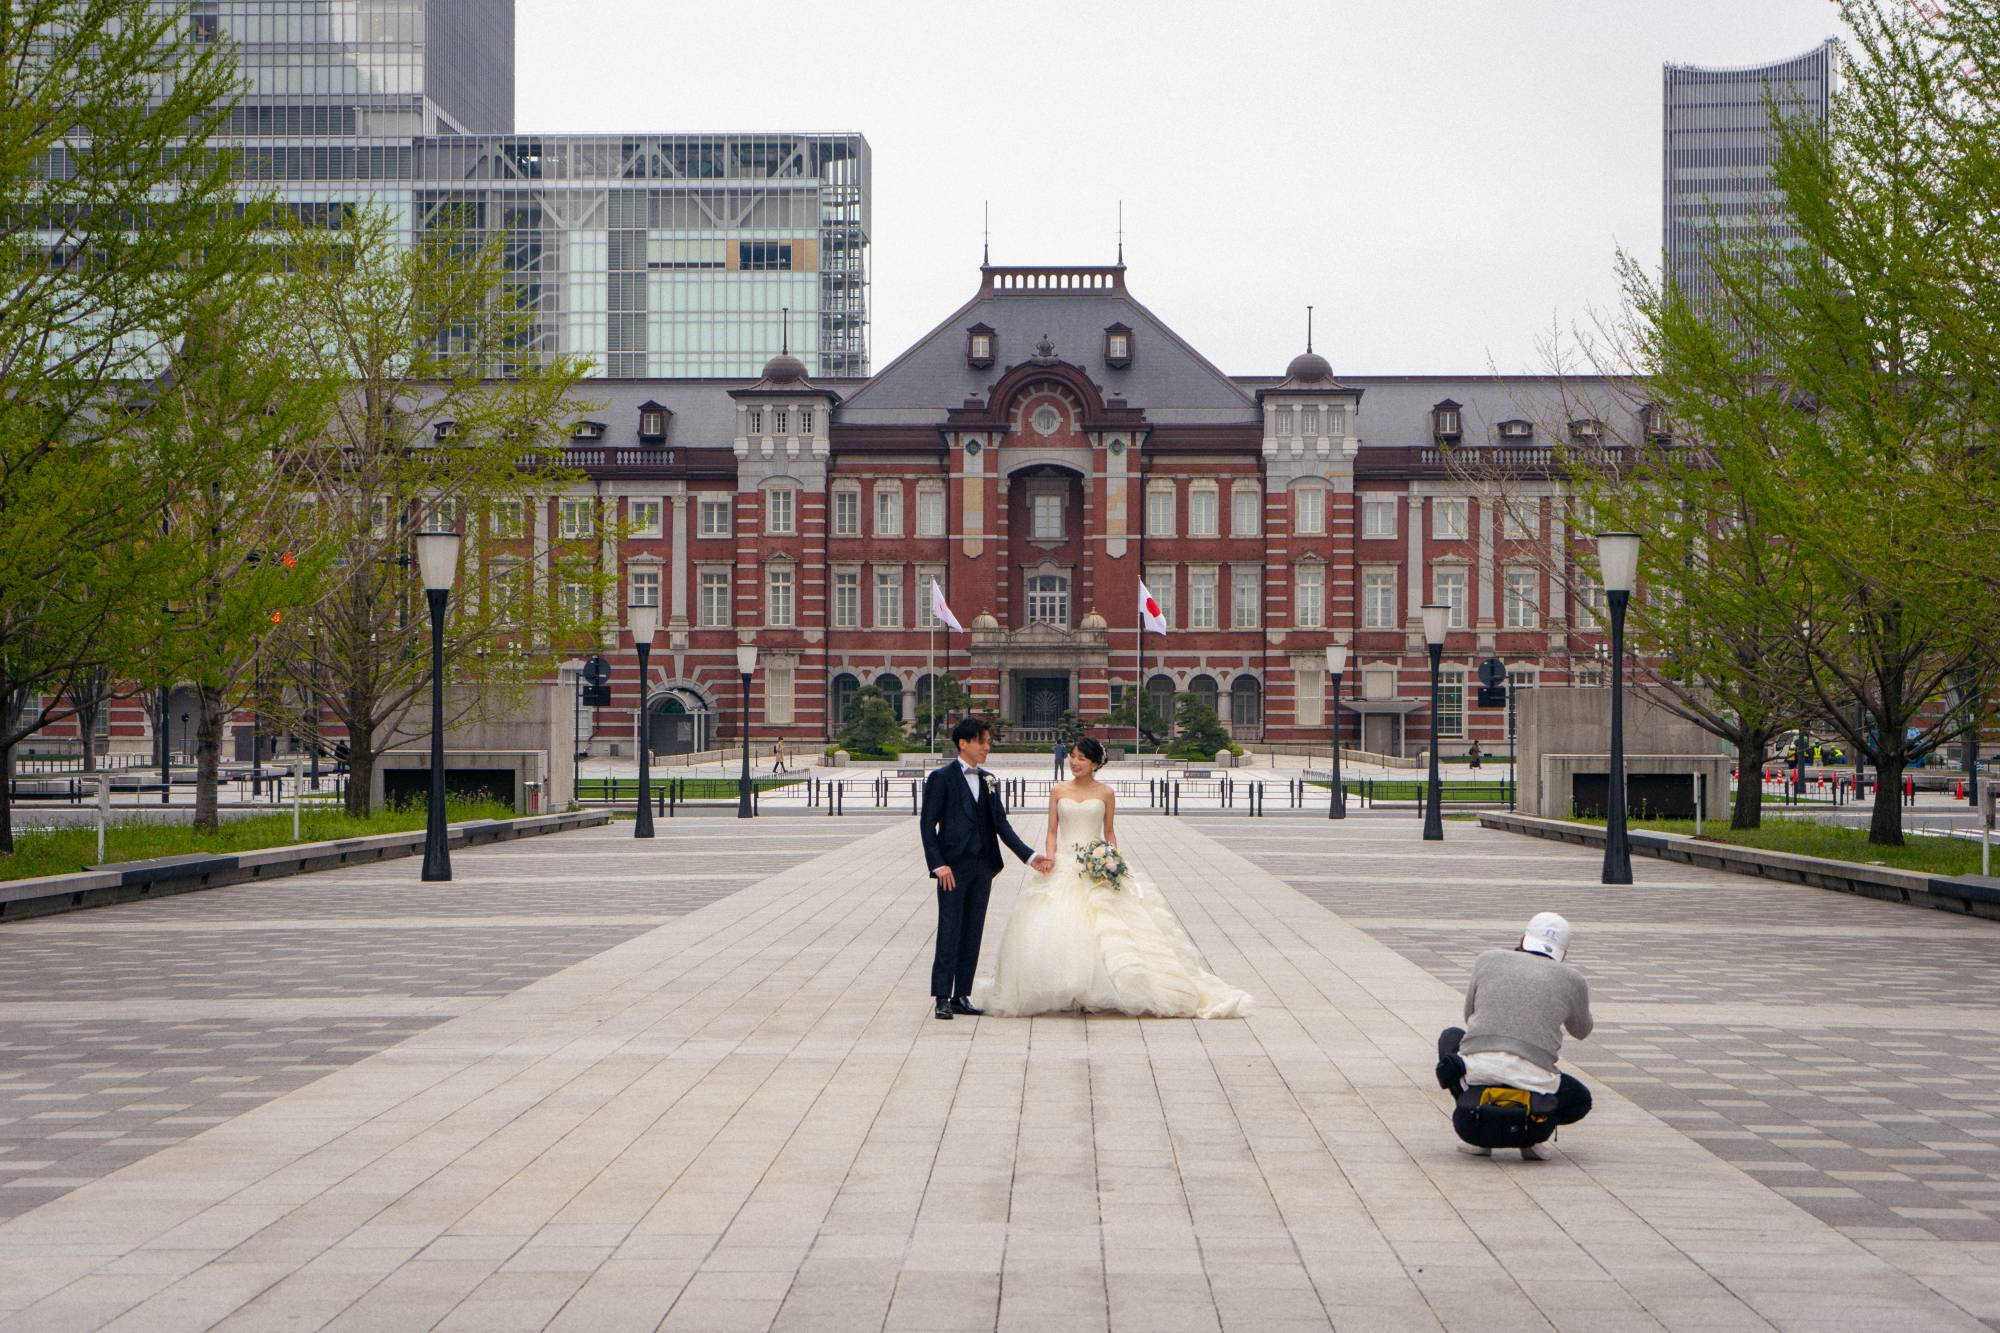 While the state of emergency forced an abrupt change to most people's lives, some saw the empty city as an opportunity. Here a couple uses an empty Tokyo Station as a backdrop for their wedding photos. On average, more than 500,000 people use Tokyo Station every day. | OSCAR BOYD